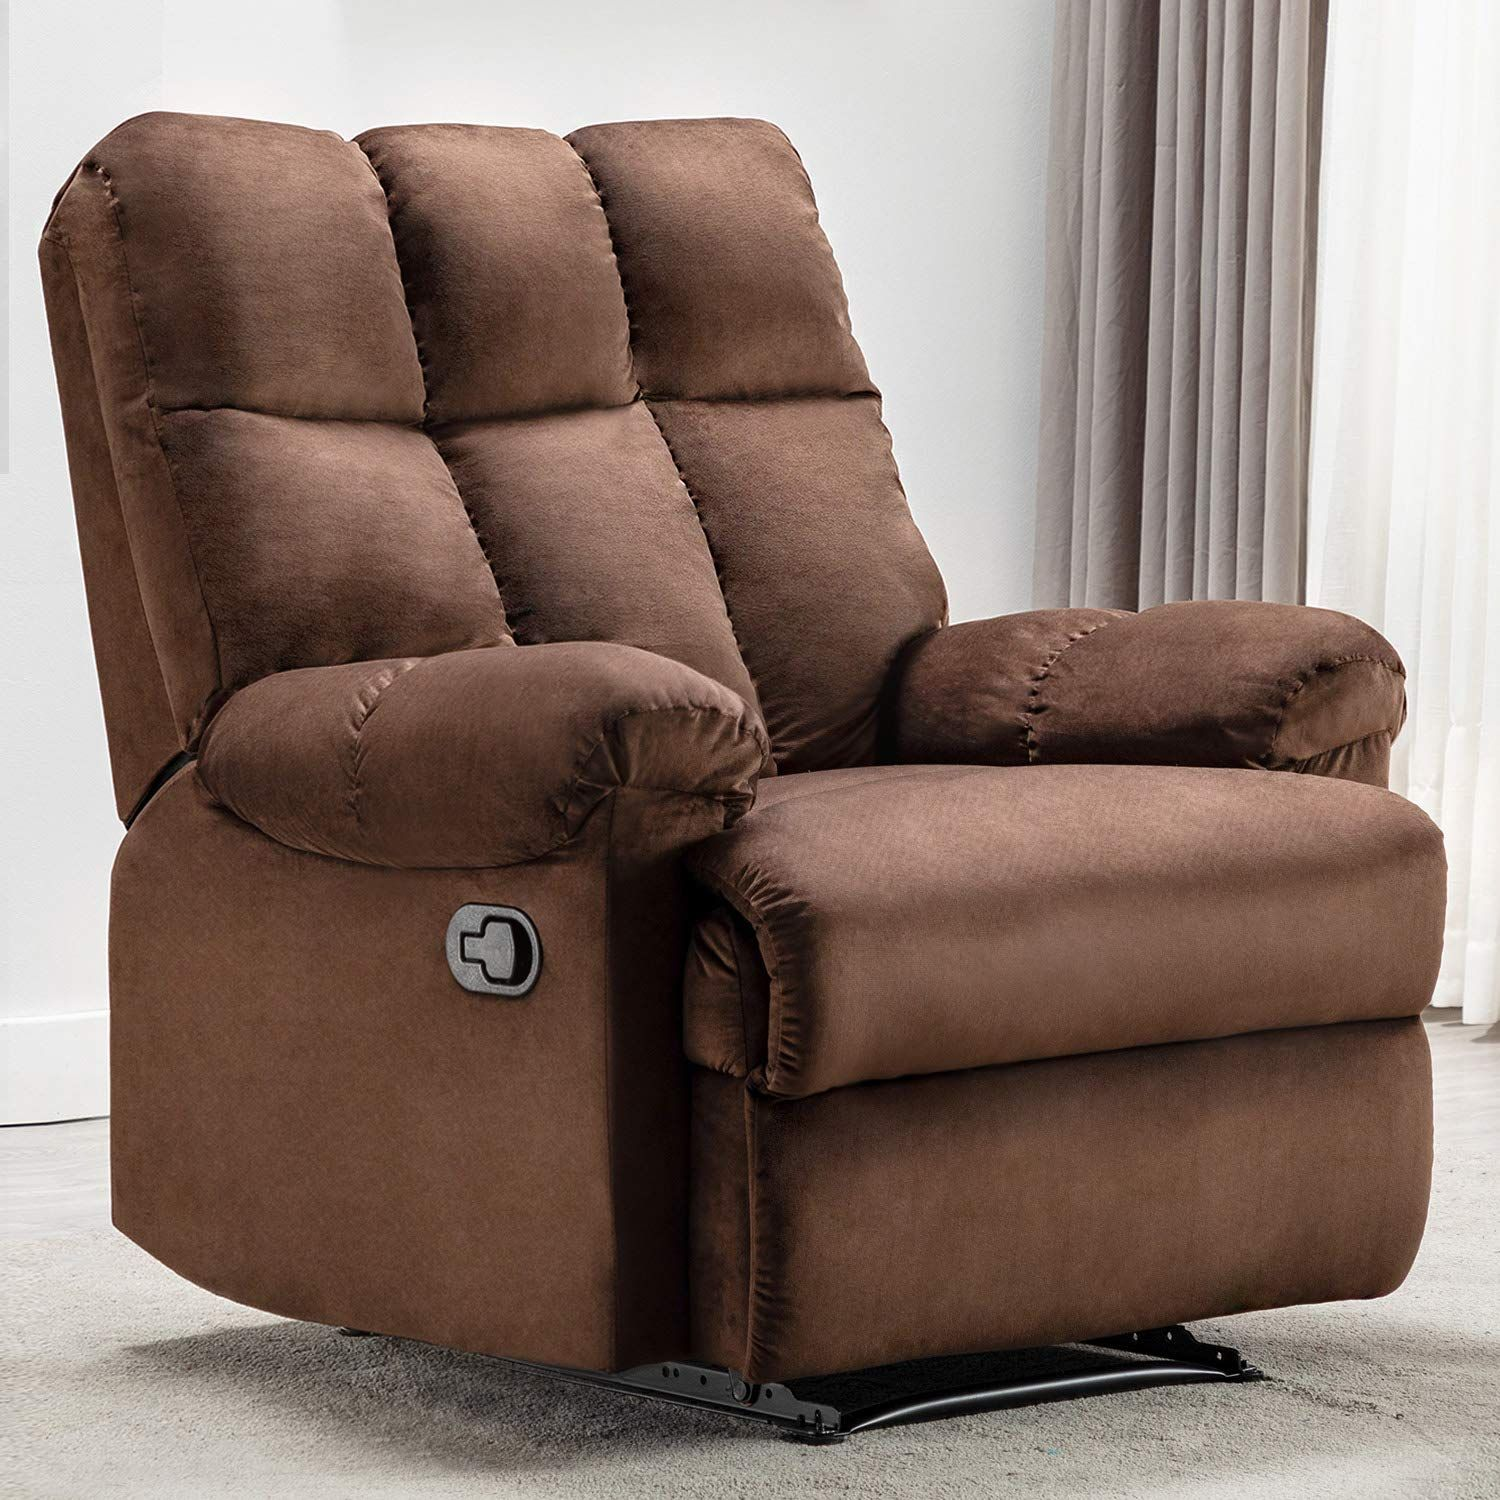 Manual Recliner Chair Armchair Sofa Padded Seat Reclining Home Theater Fabric